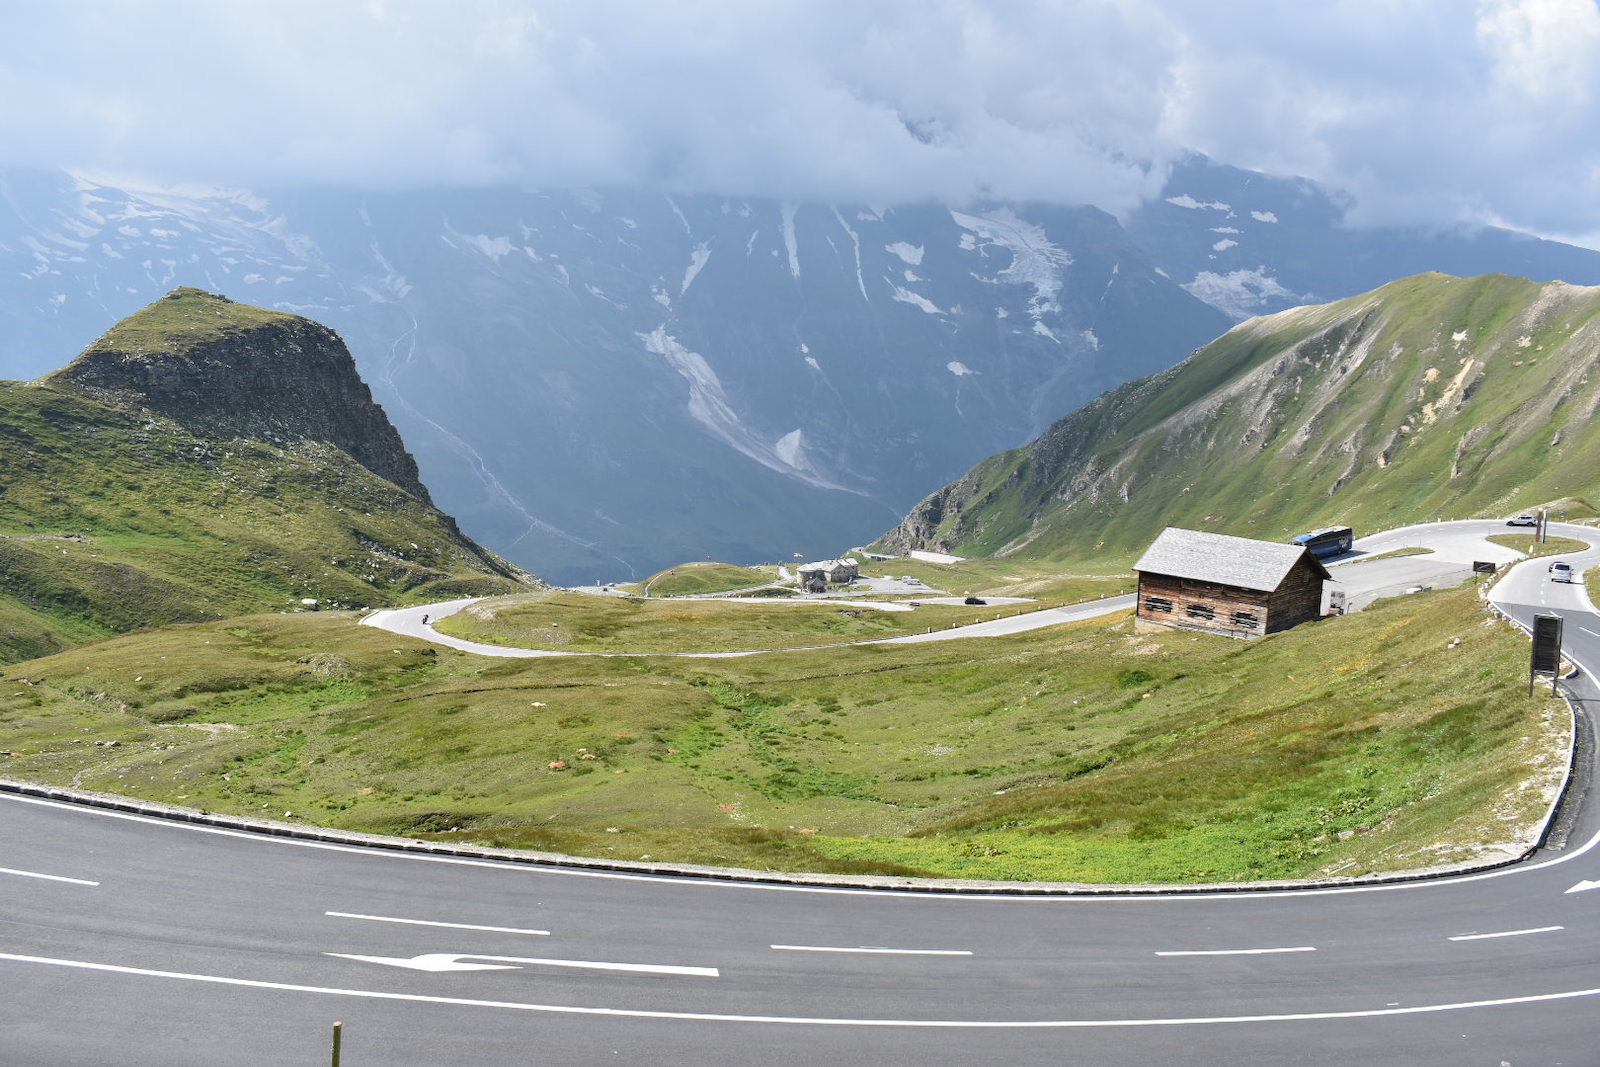 The Grossglockner Road, CO